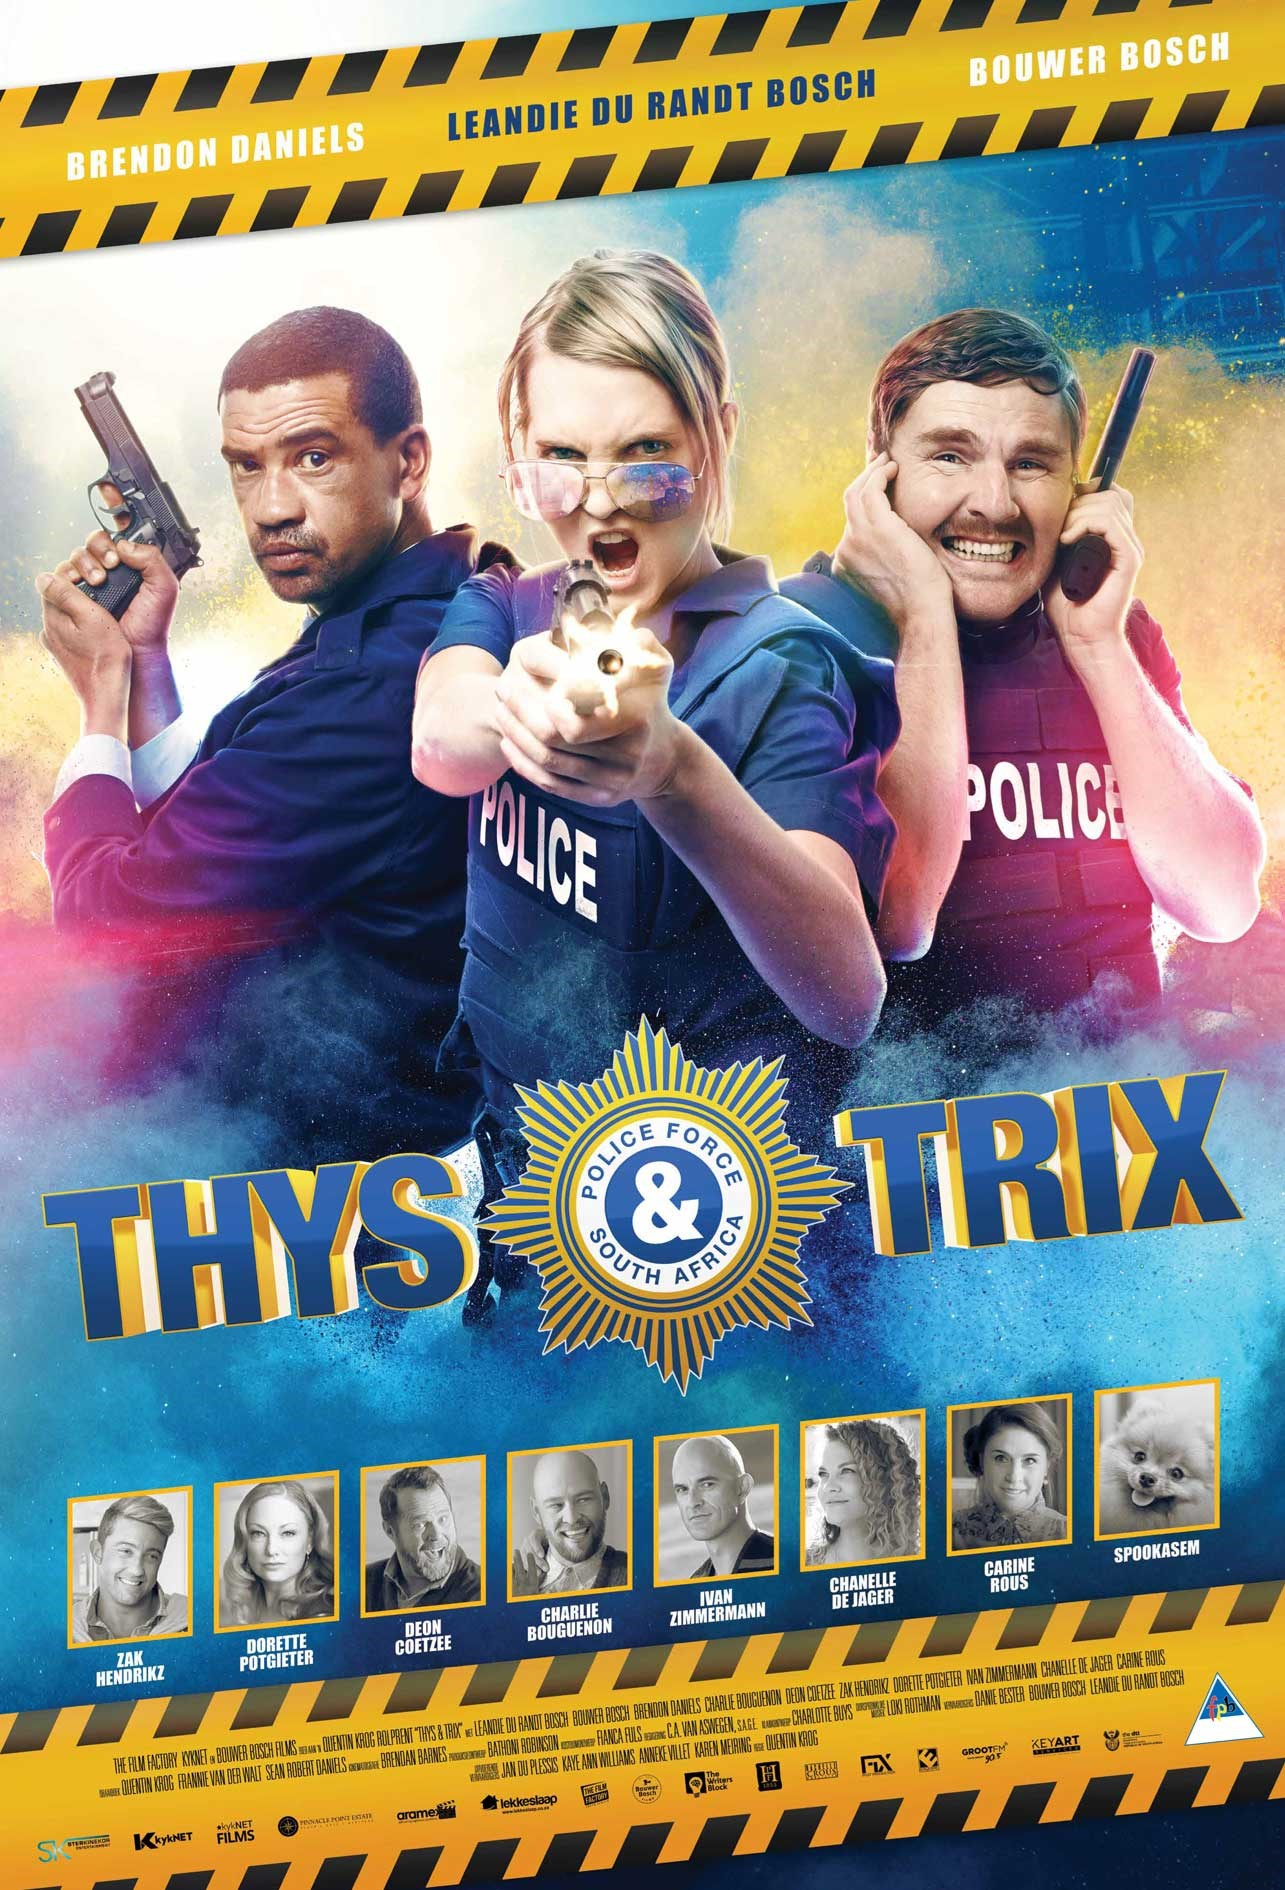 THYS EN TRIX now showing at Shelly Centre